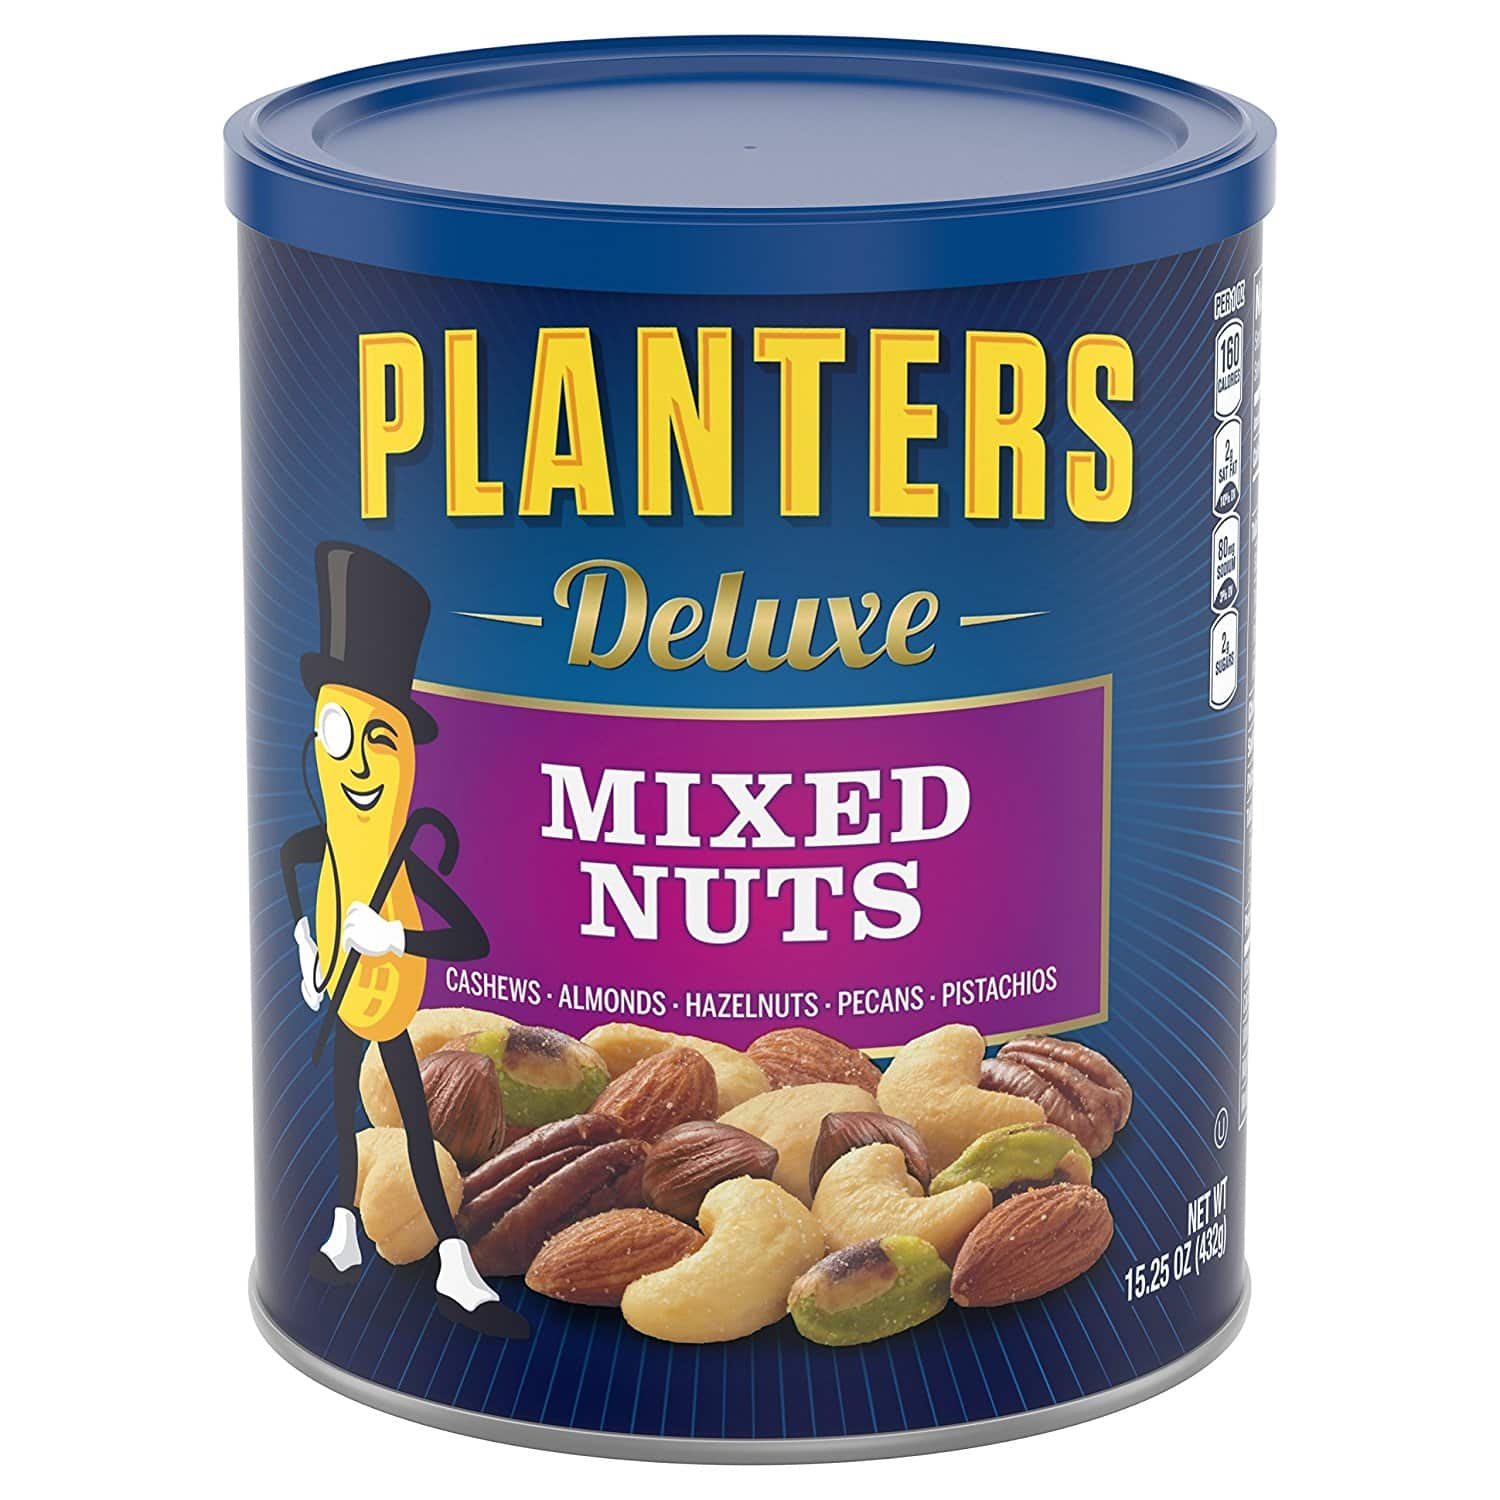 15.25oz Planters Deluxe Mixed Nuts $7.54 or Less w/ S&S + Free Shipping ~ Amazon